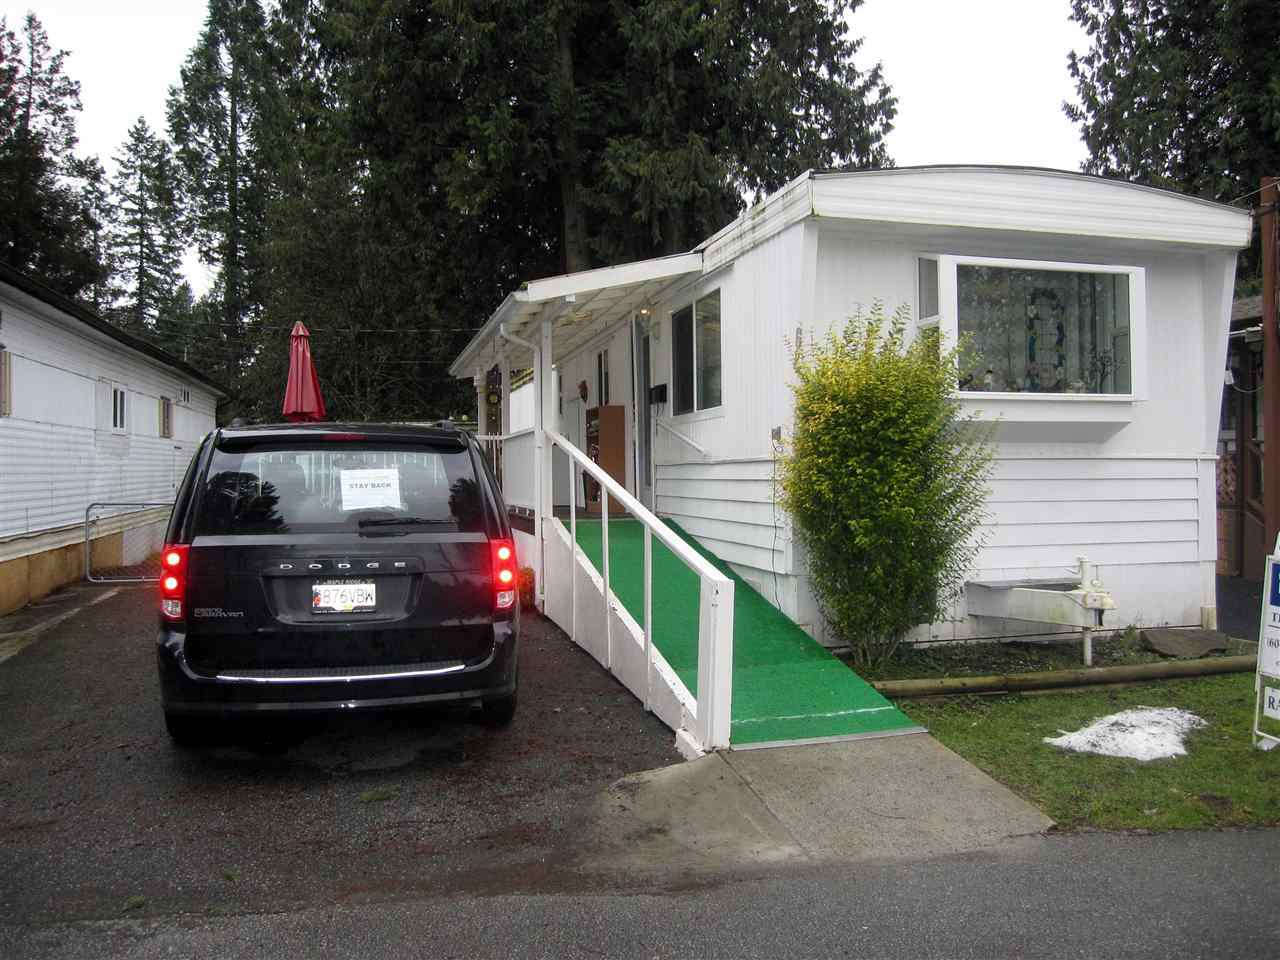 """Main Photo: 62 21163 LOUGHEED Highway in Maple Ridge: Southwest Maple Ridge Manufactured Home for sale in """"VAL MARIA MOBILE HOME PARK"""" : MLS®# R2244017"""